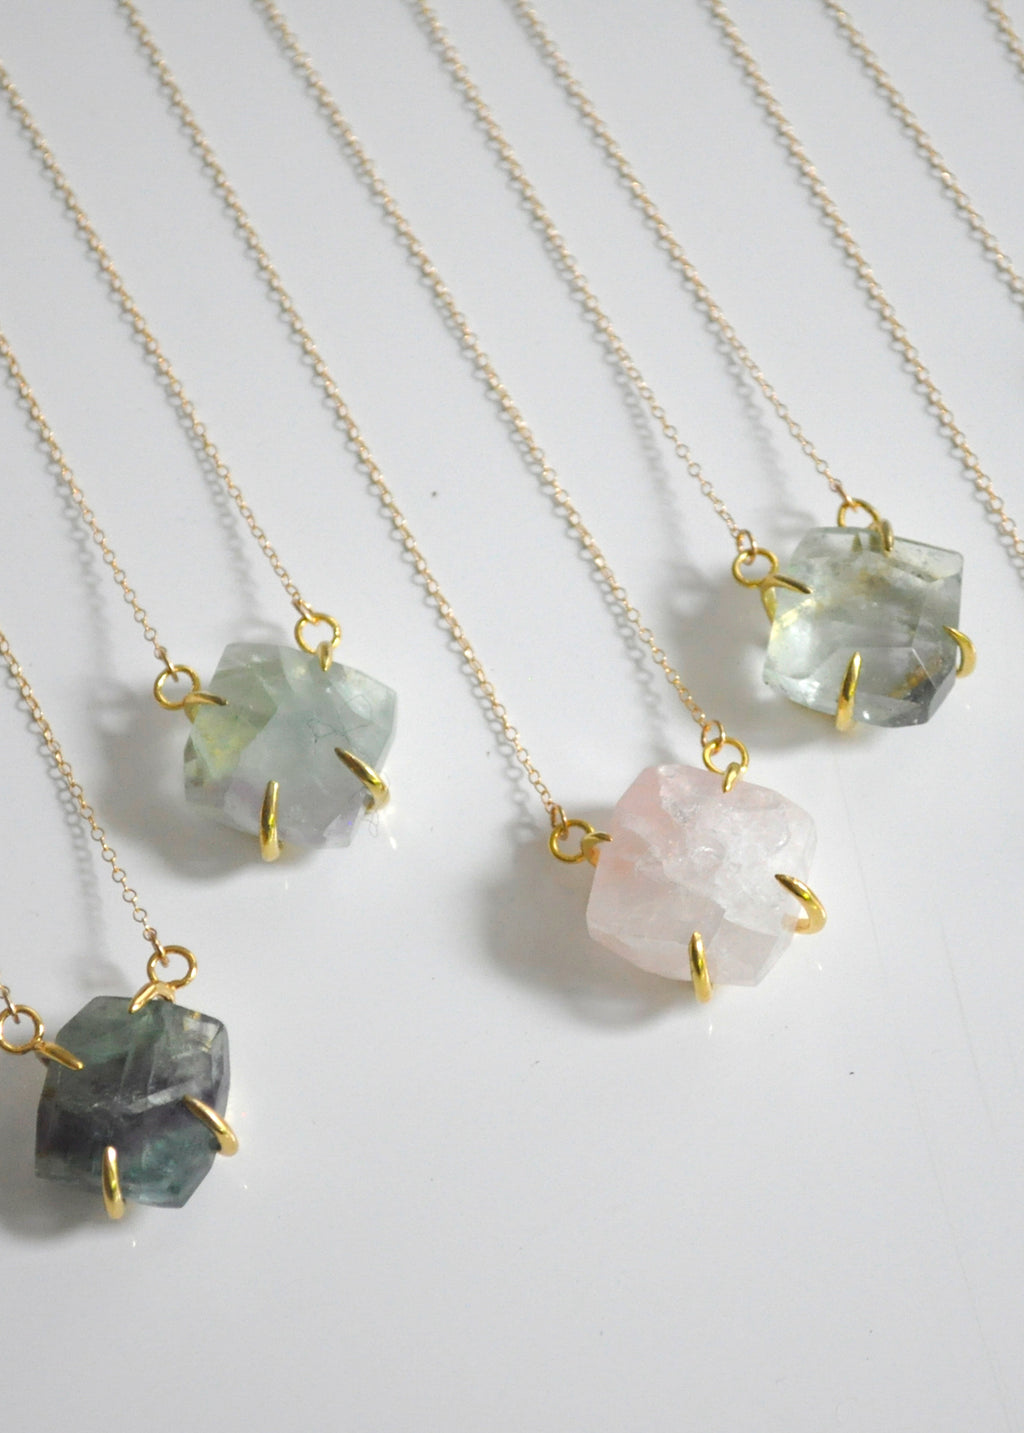 Faceted gemstone necklace